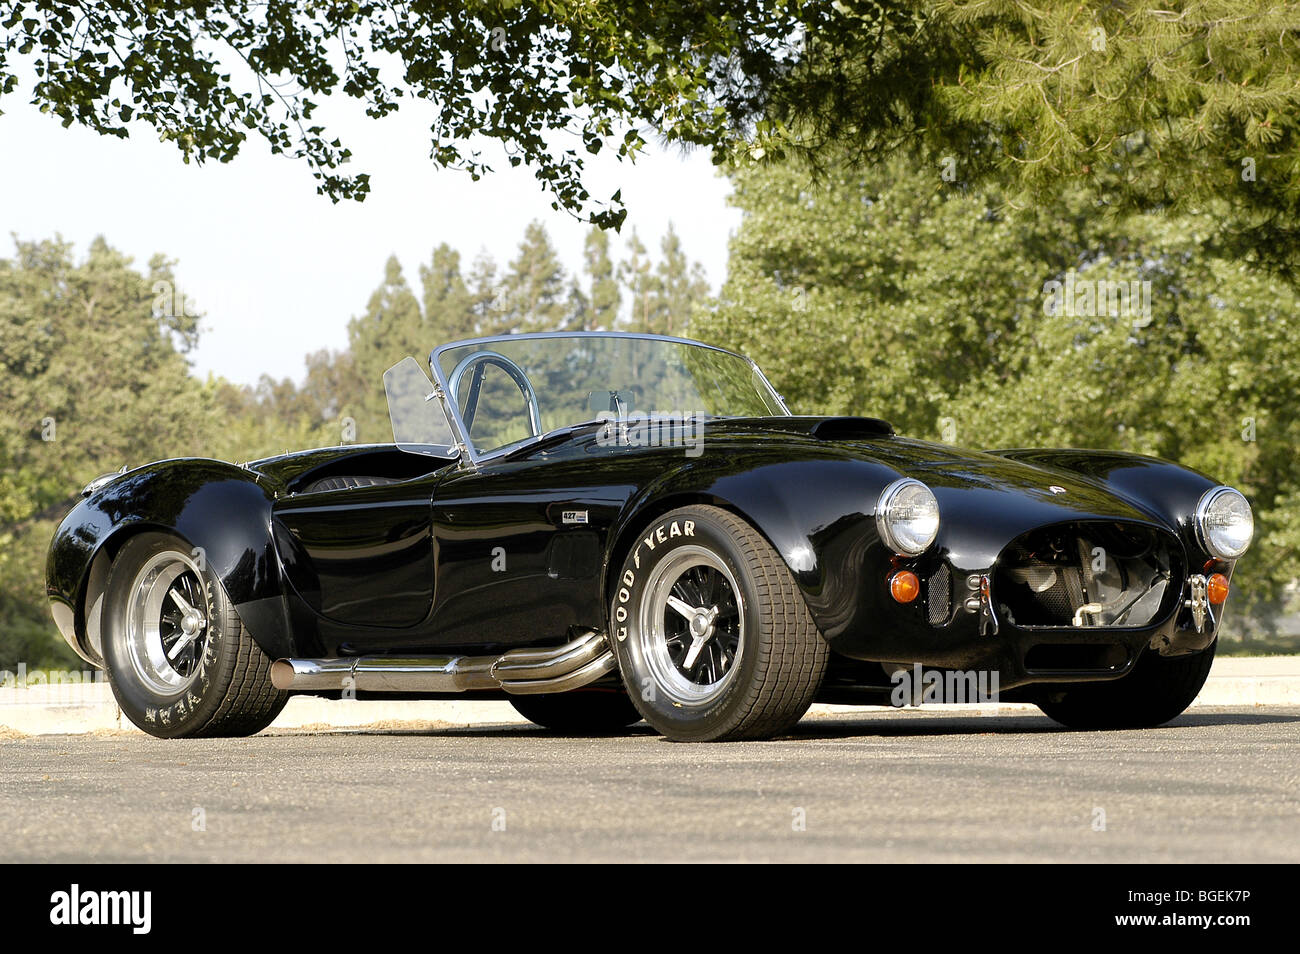 1967 Shelby cobra 427 in black this is a real Shelby car Stock